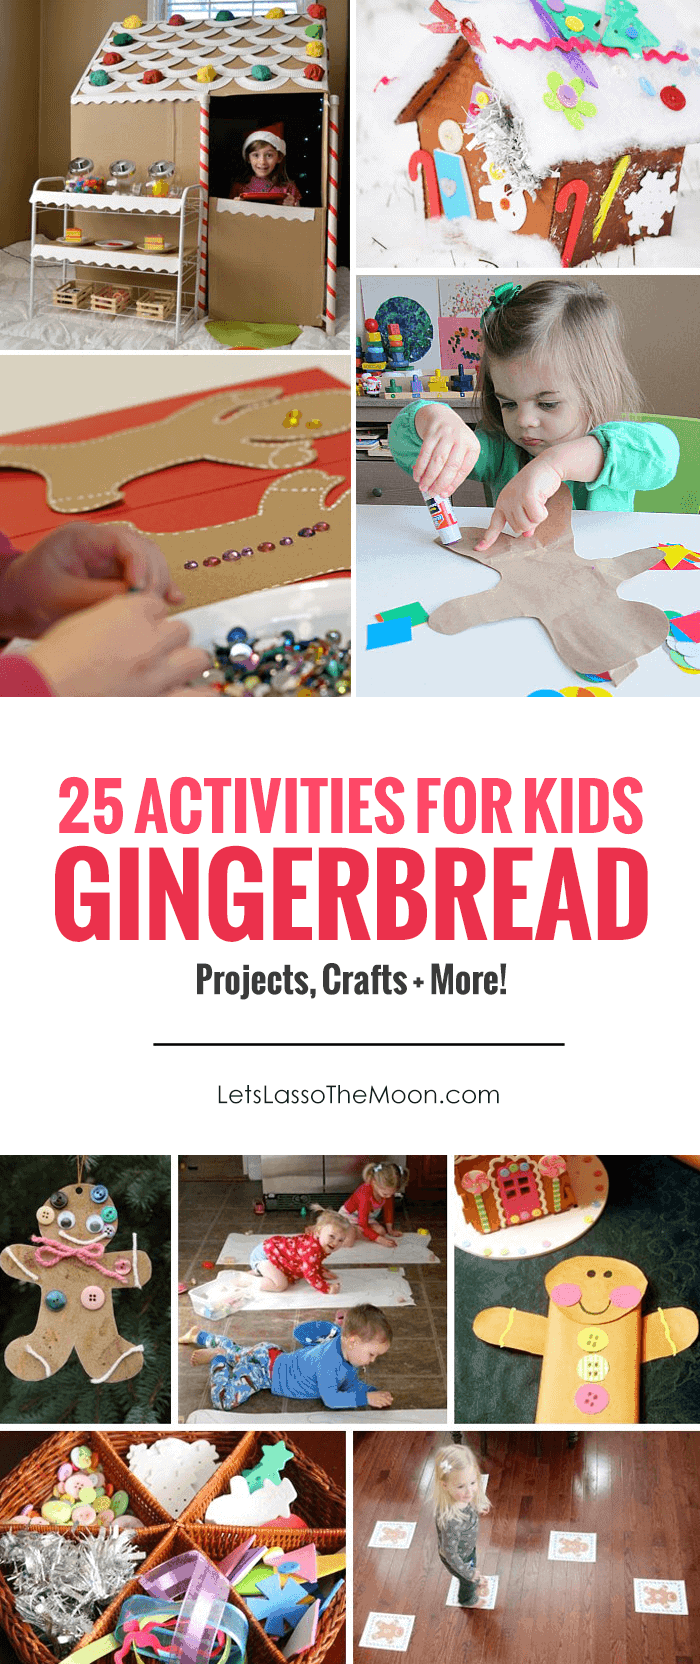 25 Gingerbread Activities for Kids: Sweet + Playful Ideas for Children *love this list of projects